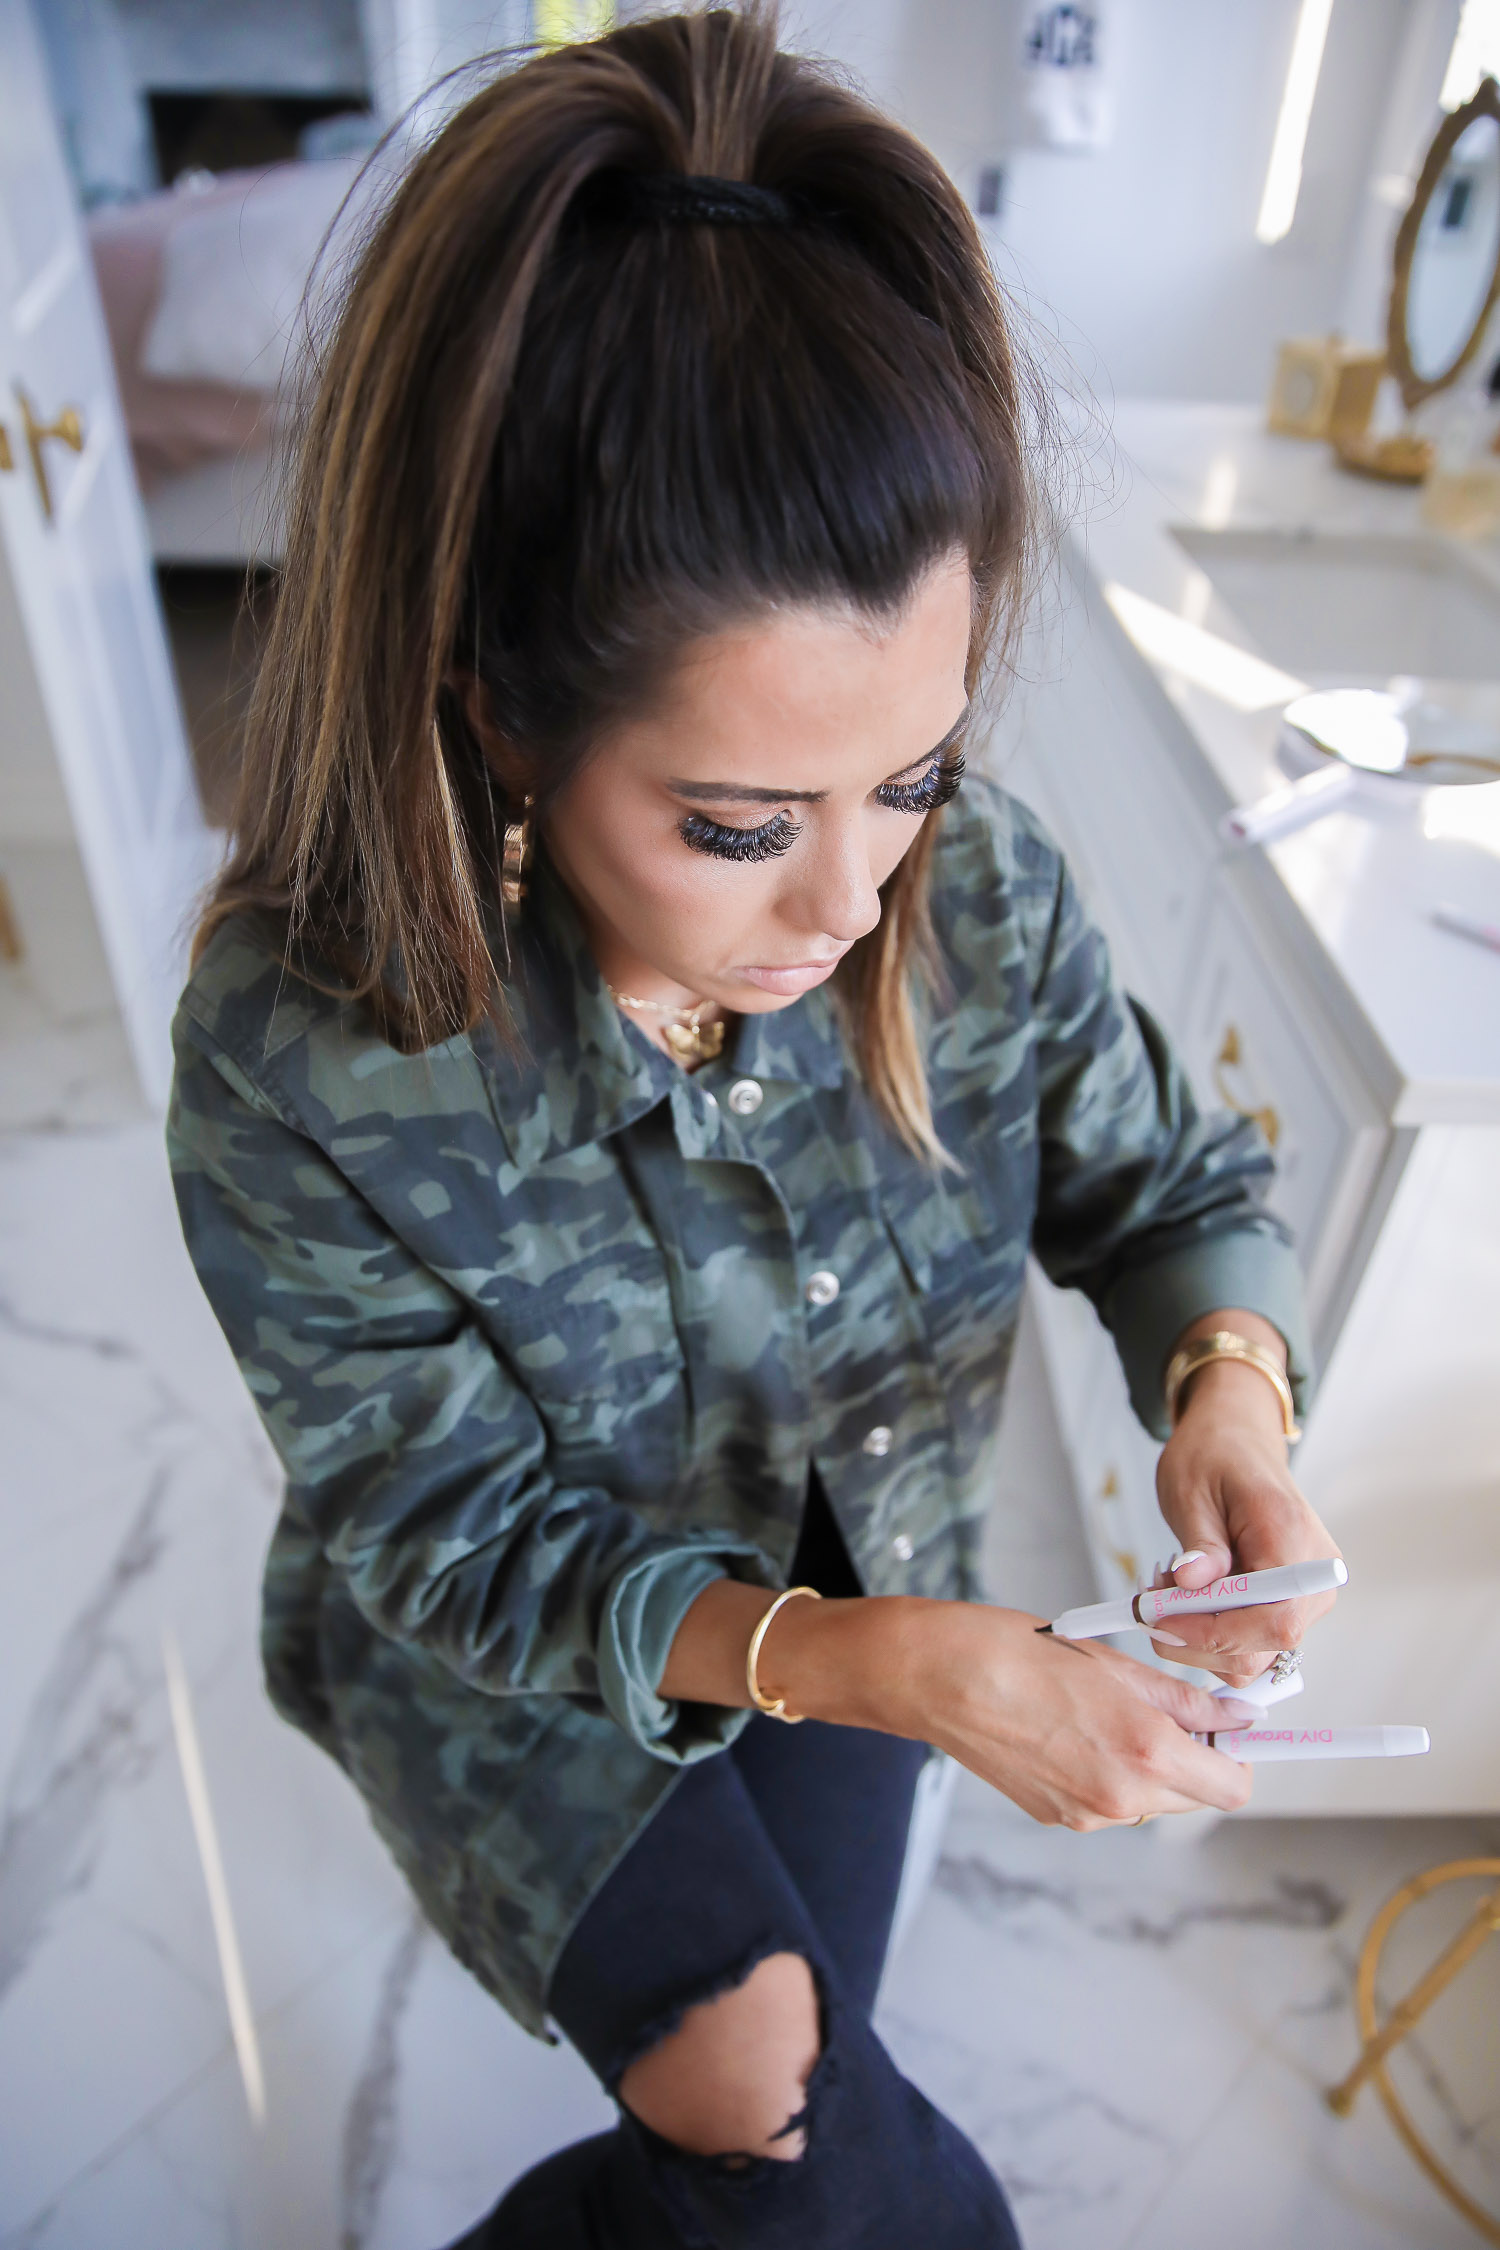 tarte DIY brow pen, national brow day, microblading brow pen, emily gemma, the sweetest thing blog |Brow Pencil by popular US beauty blog, The Sweetest Thing: image of Emily Gemma wearing a camo jacket and using a Tarte DIY brow pencil.